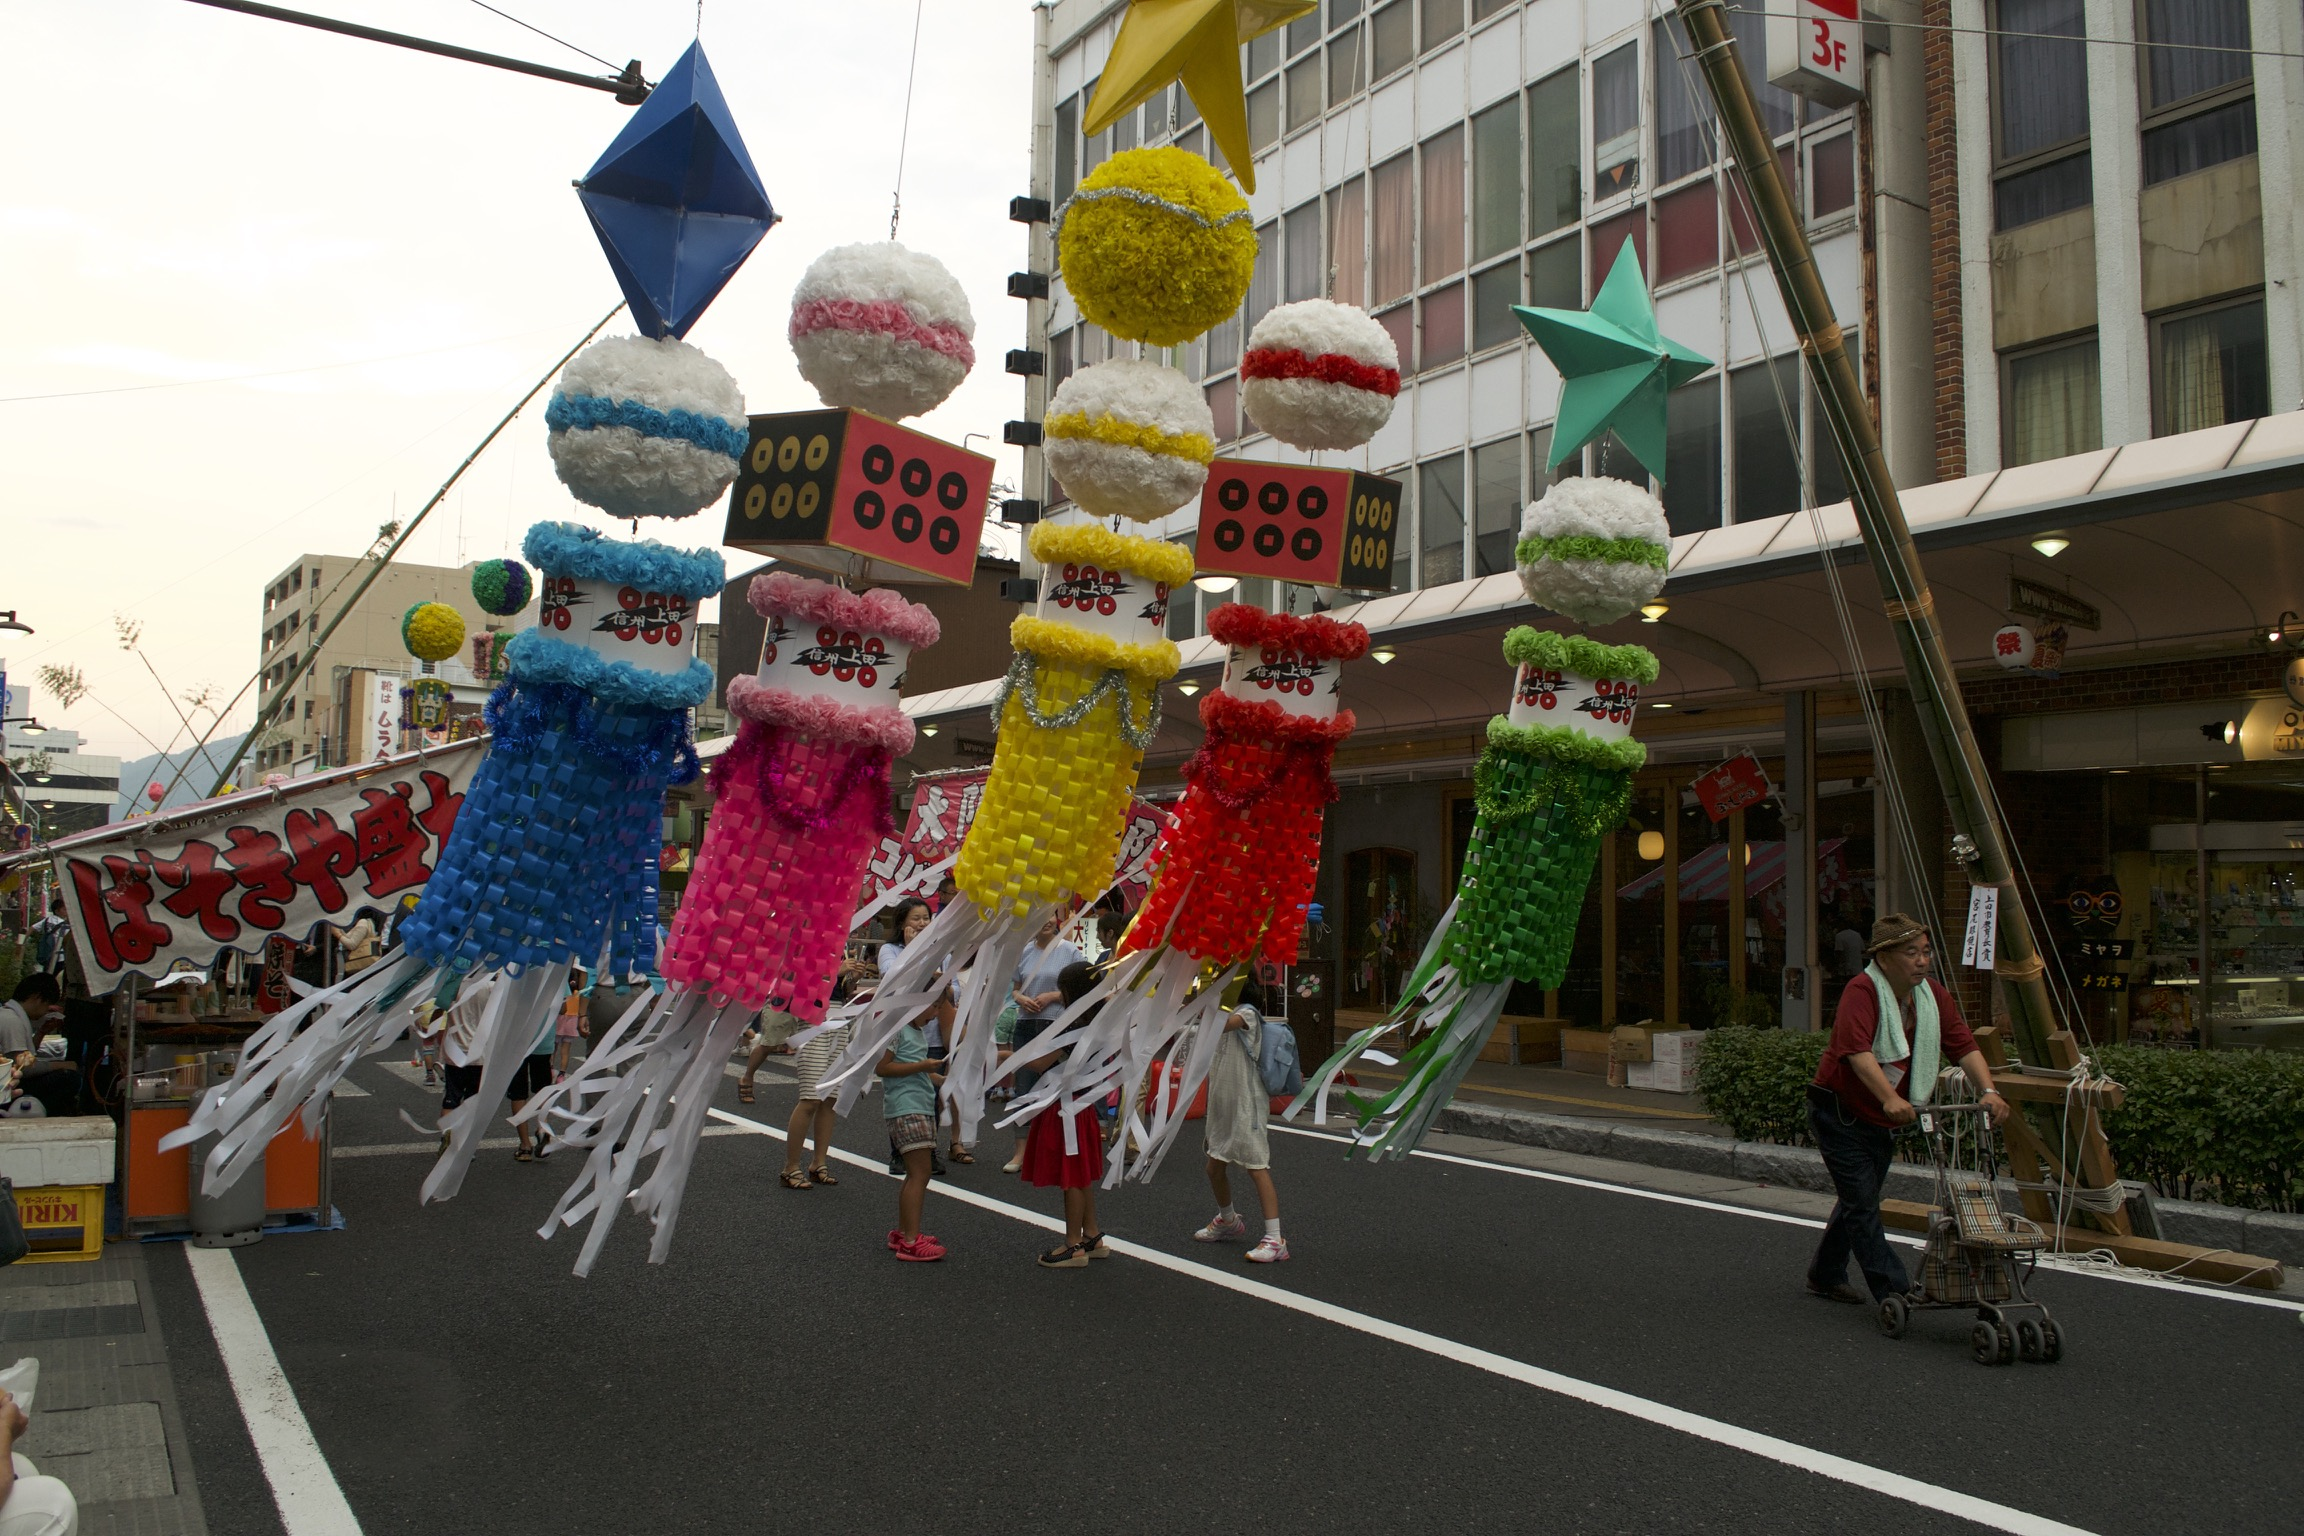 Five large, brightly-colored piñata-like objects hang in the middle of a street.